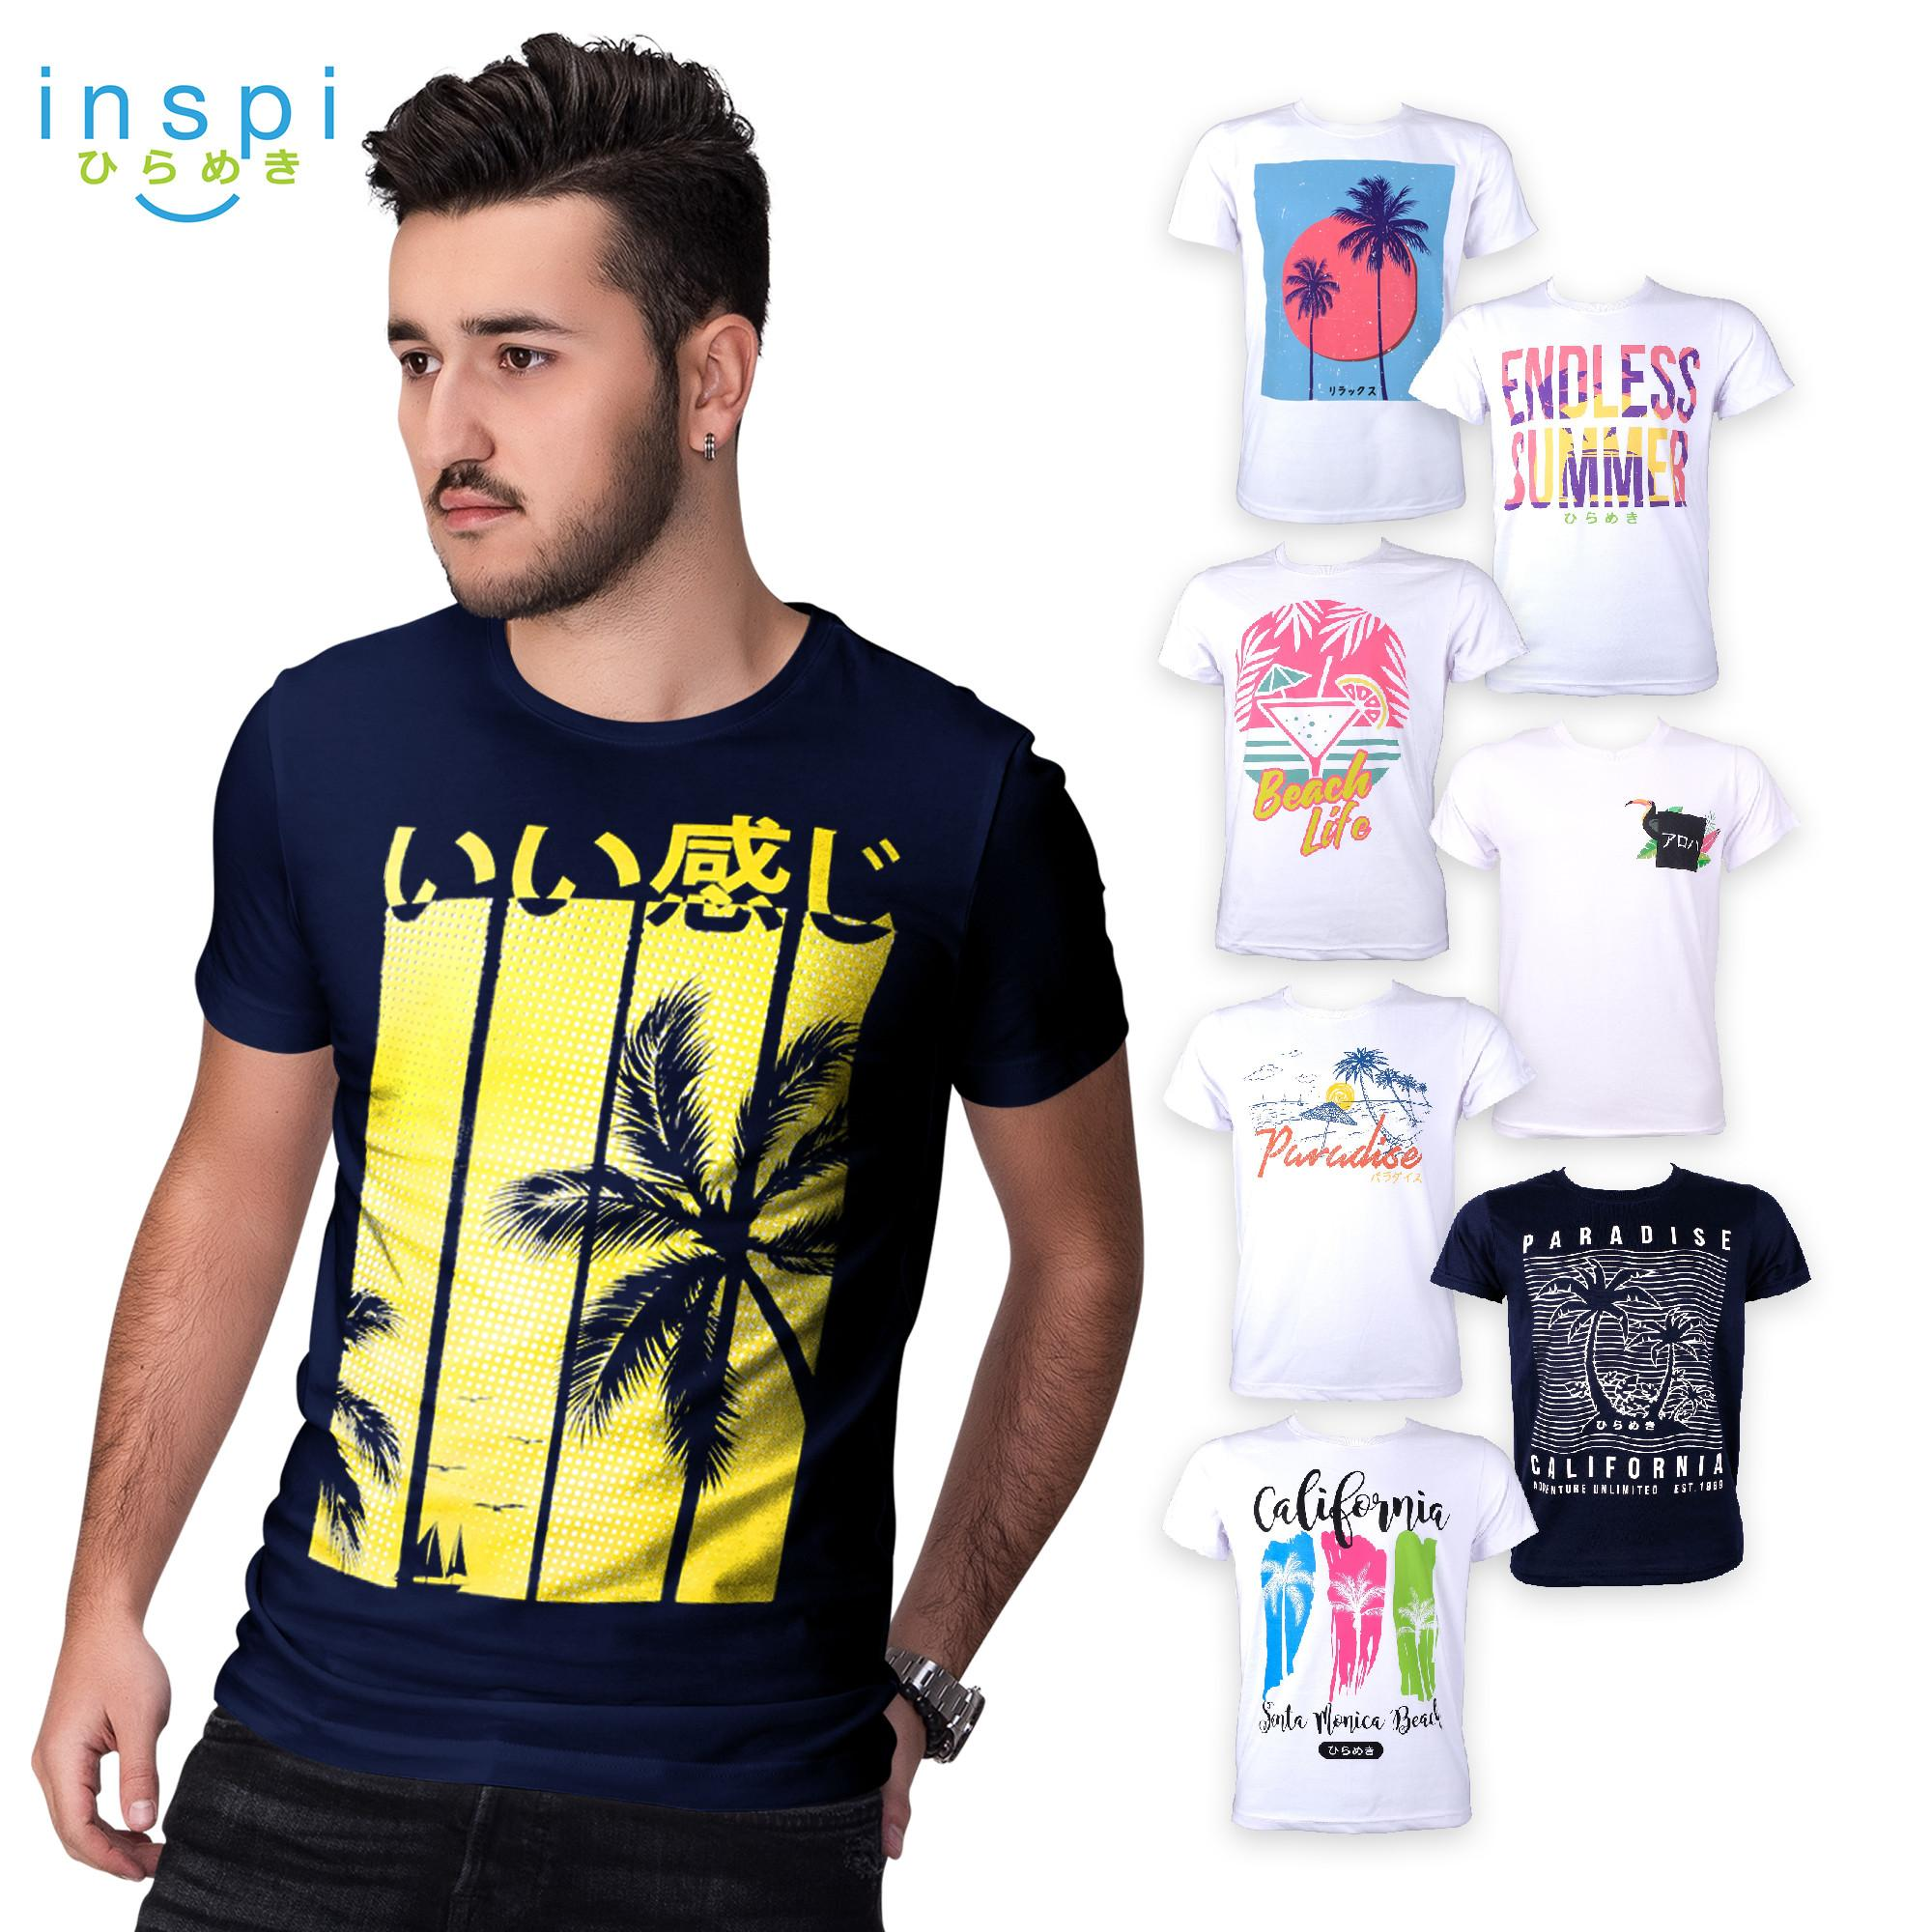 b164d94ff0f INSPI Tees Summer Collection tshirt printed graphic tee Mens t shirt shirts  for men tshirts sale